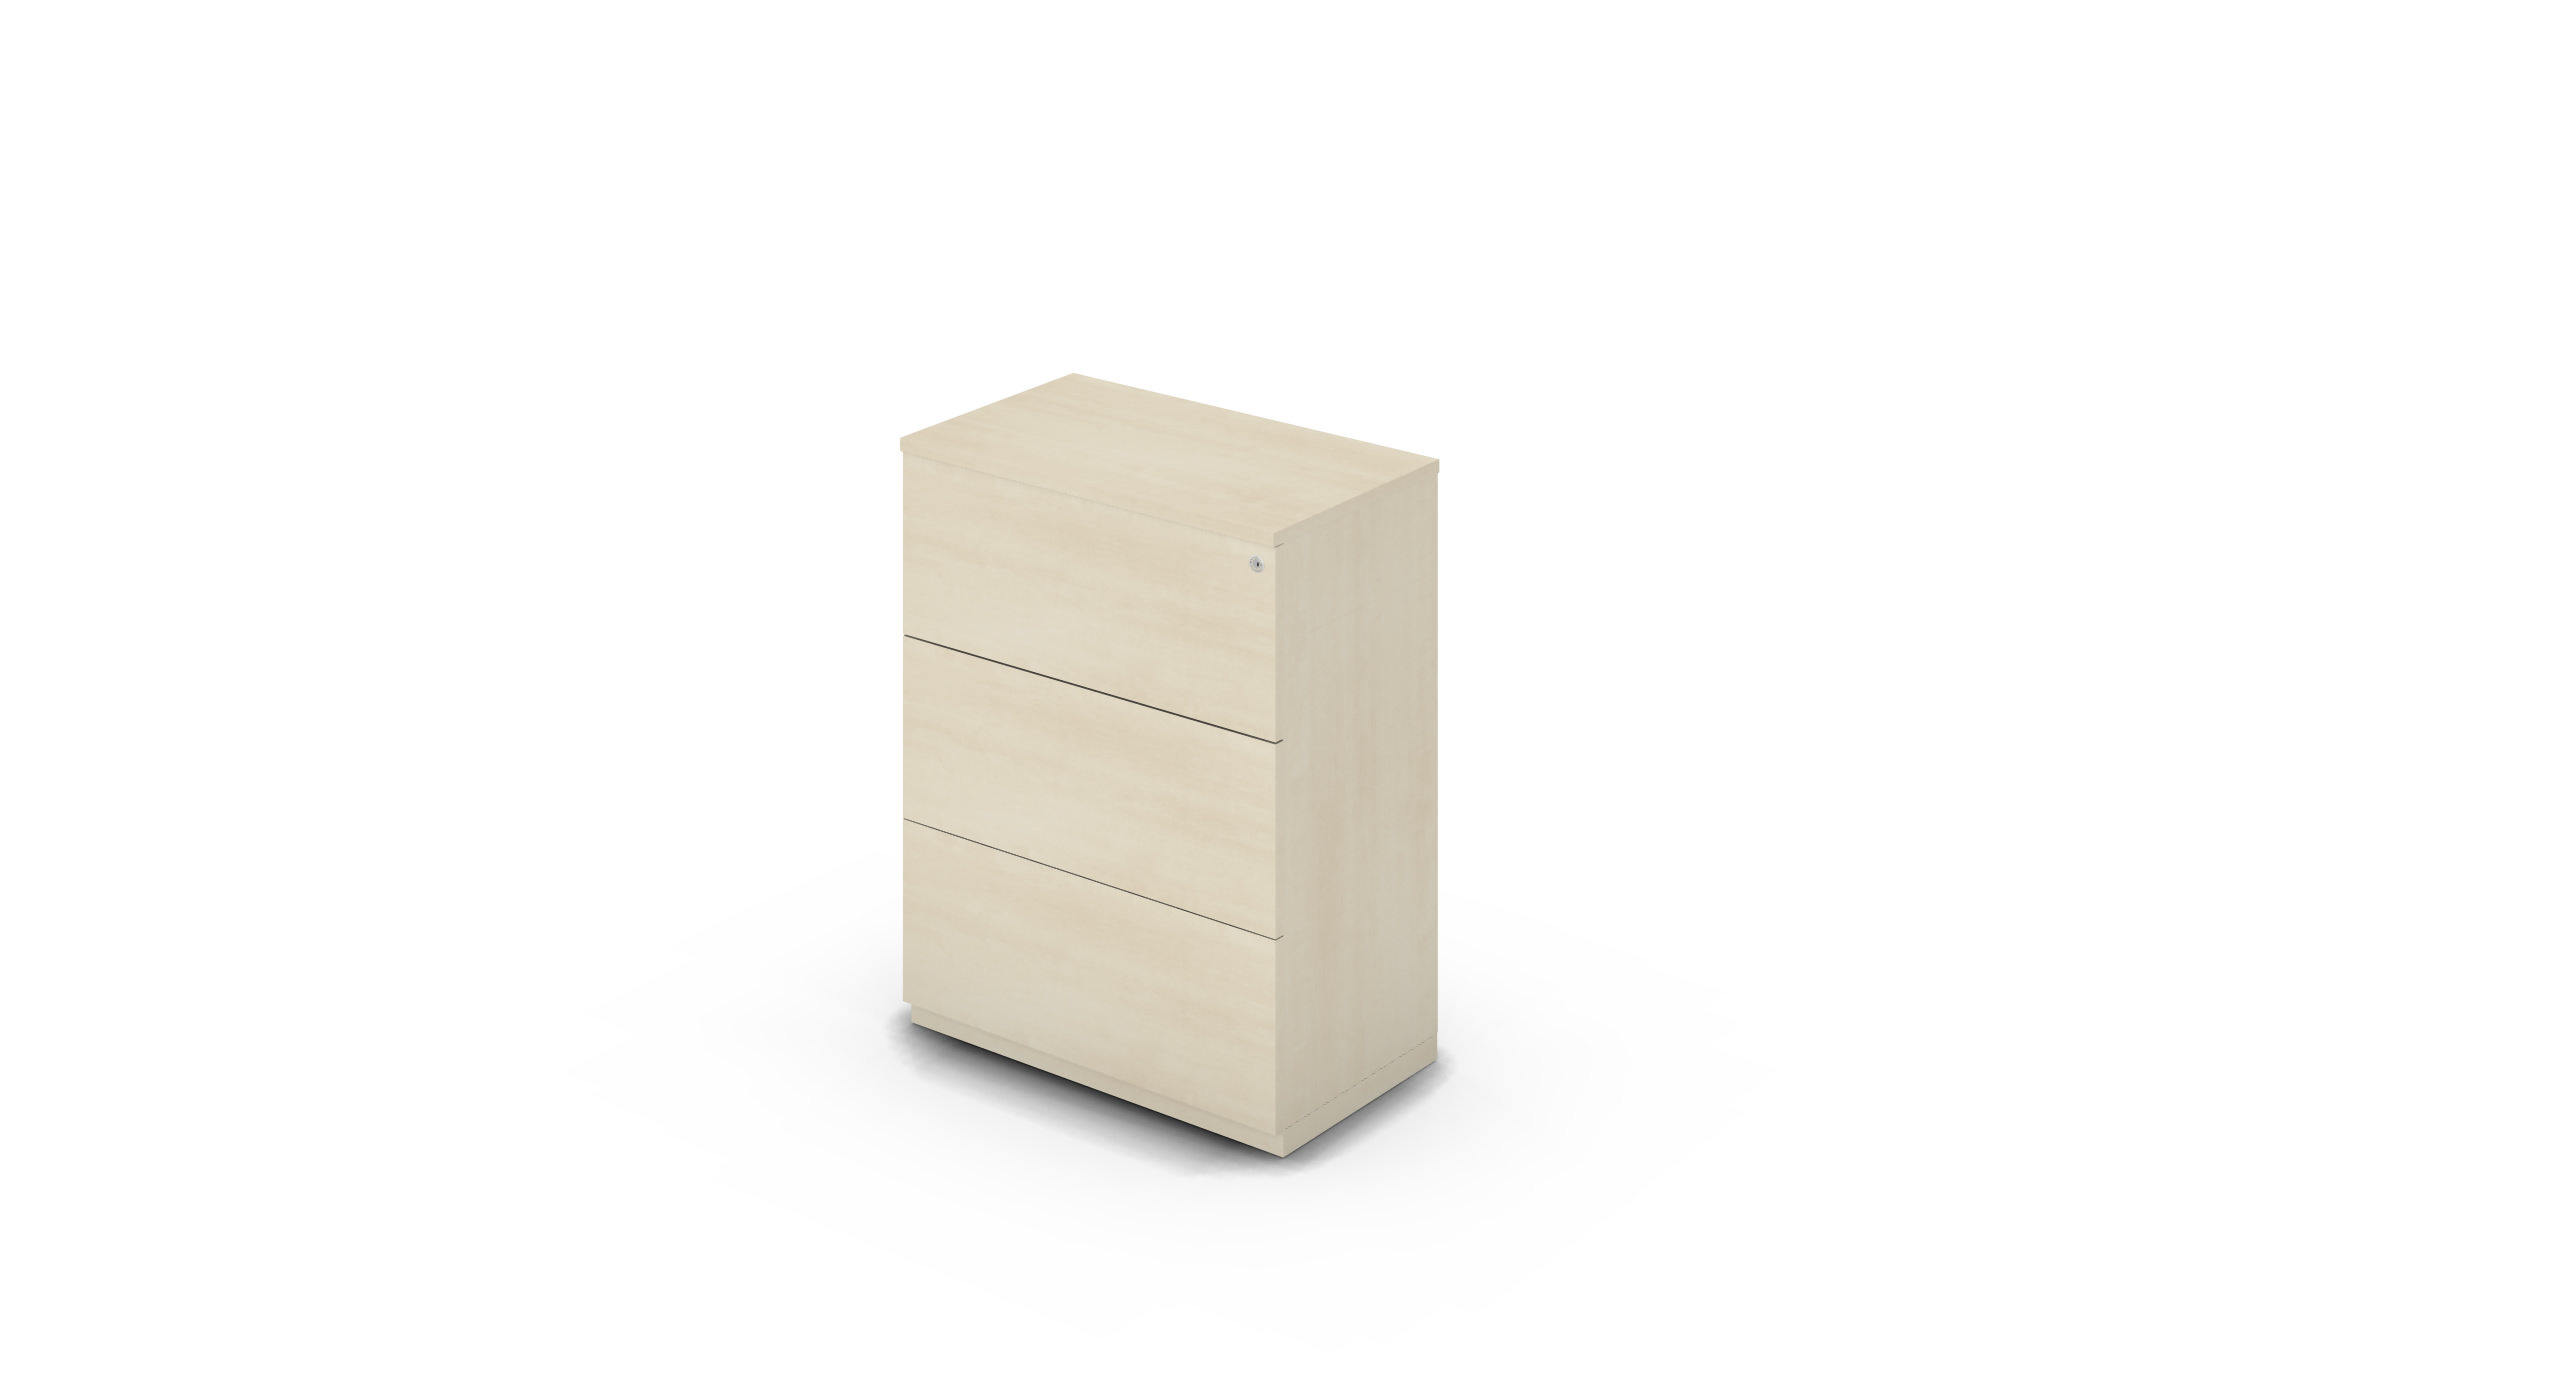 Cabinet_800x450x1125_DR_Maple_Push_WithCylinder